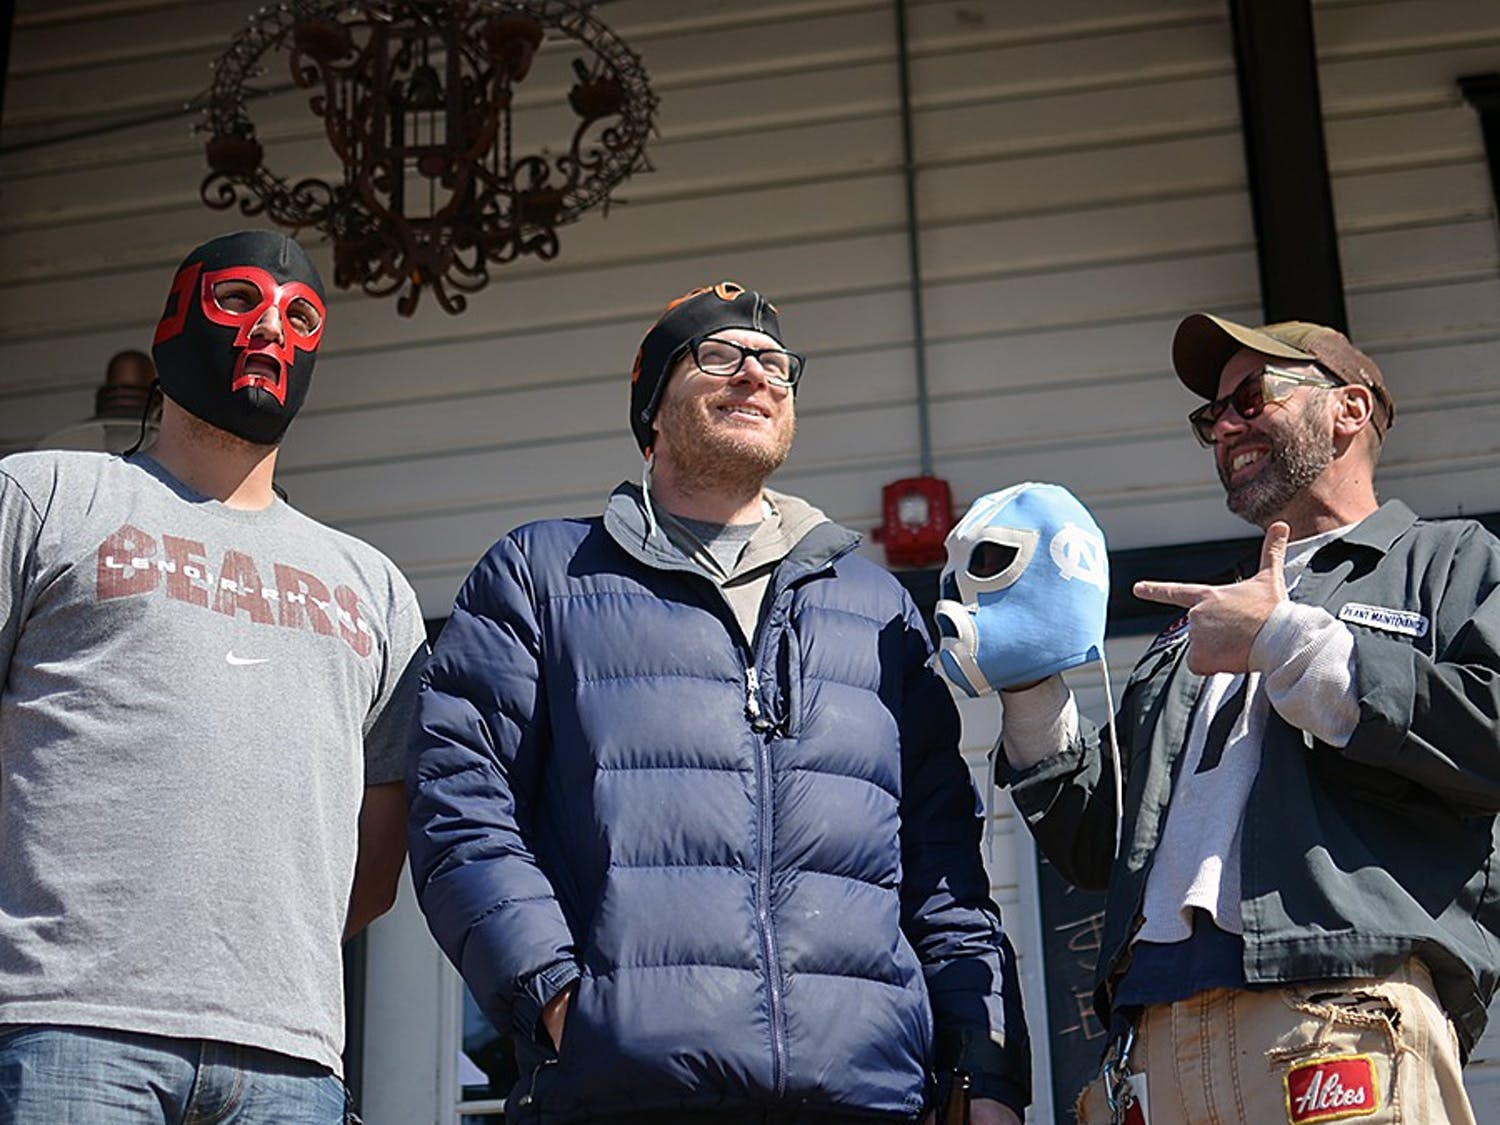 Alex Freeman (left), Chip Hoppin (middle), Mike Benson (right), and Mike Tyrrell (not pictured), own a mask making business in Carrboro. They have been making masks for ten years.